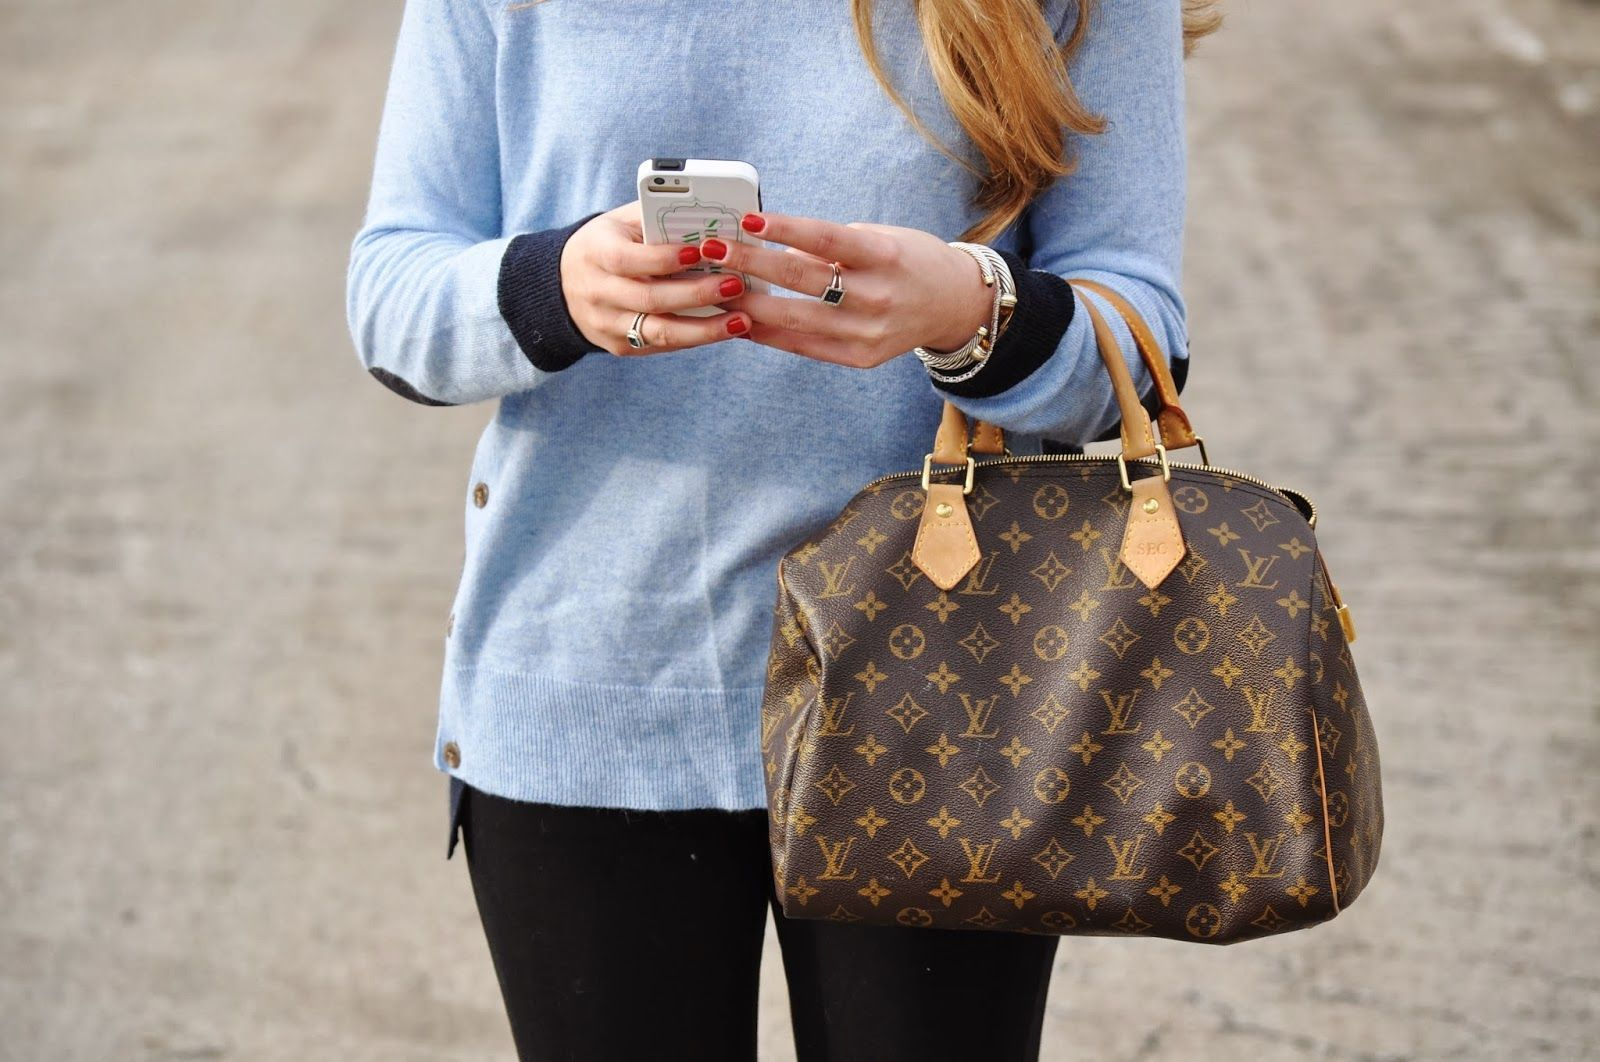 #louisvuittonspeedy #louisvuittonspeedy30  #louisvuittonbags #louisvuittonhandbags   The Louis Vuitton Speedy 30 in elegant canvas is an ideal city bag for every day. Originally created for travelers in the 1930s – the name refers to the era's rapid transit – every feature of the Speedy's design is iconic, from its unmistakable shape to the rolled leather handles, engraved padlock and detachable strap.